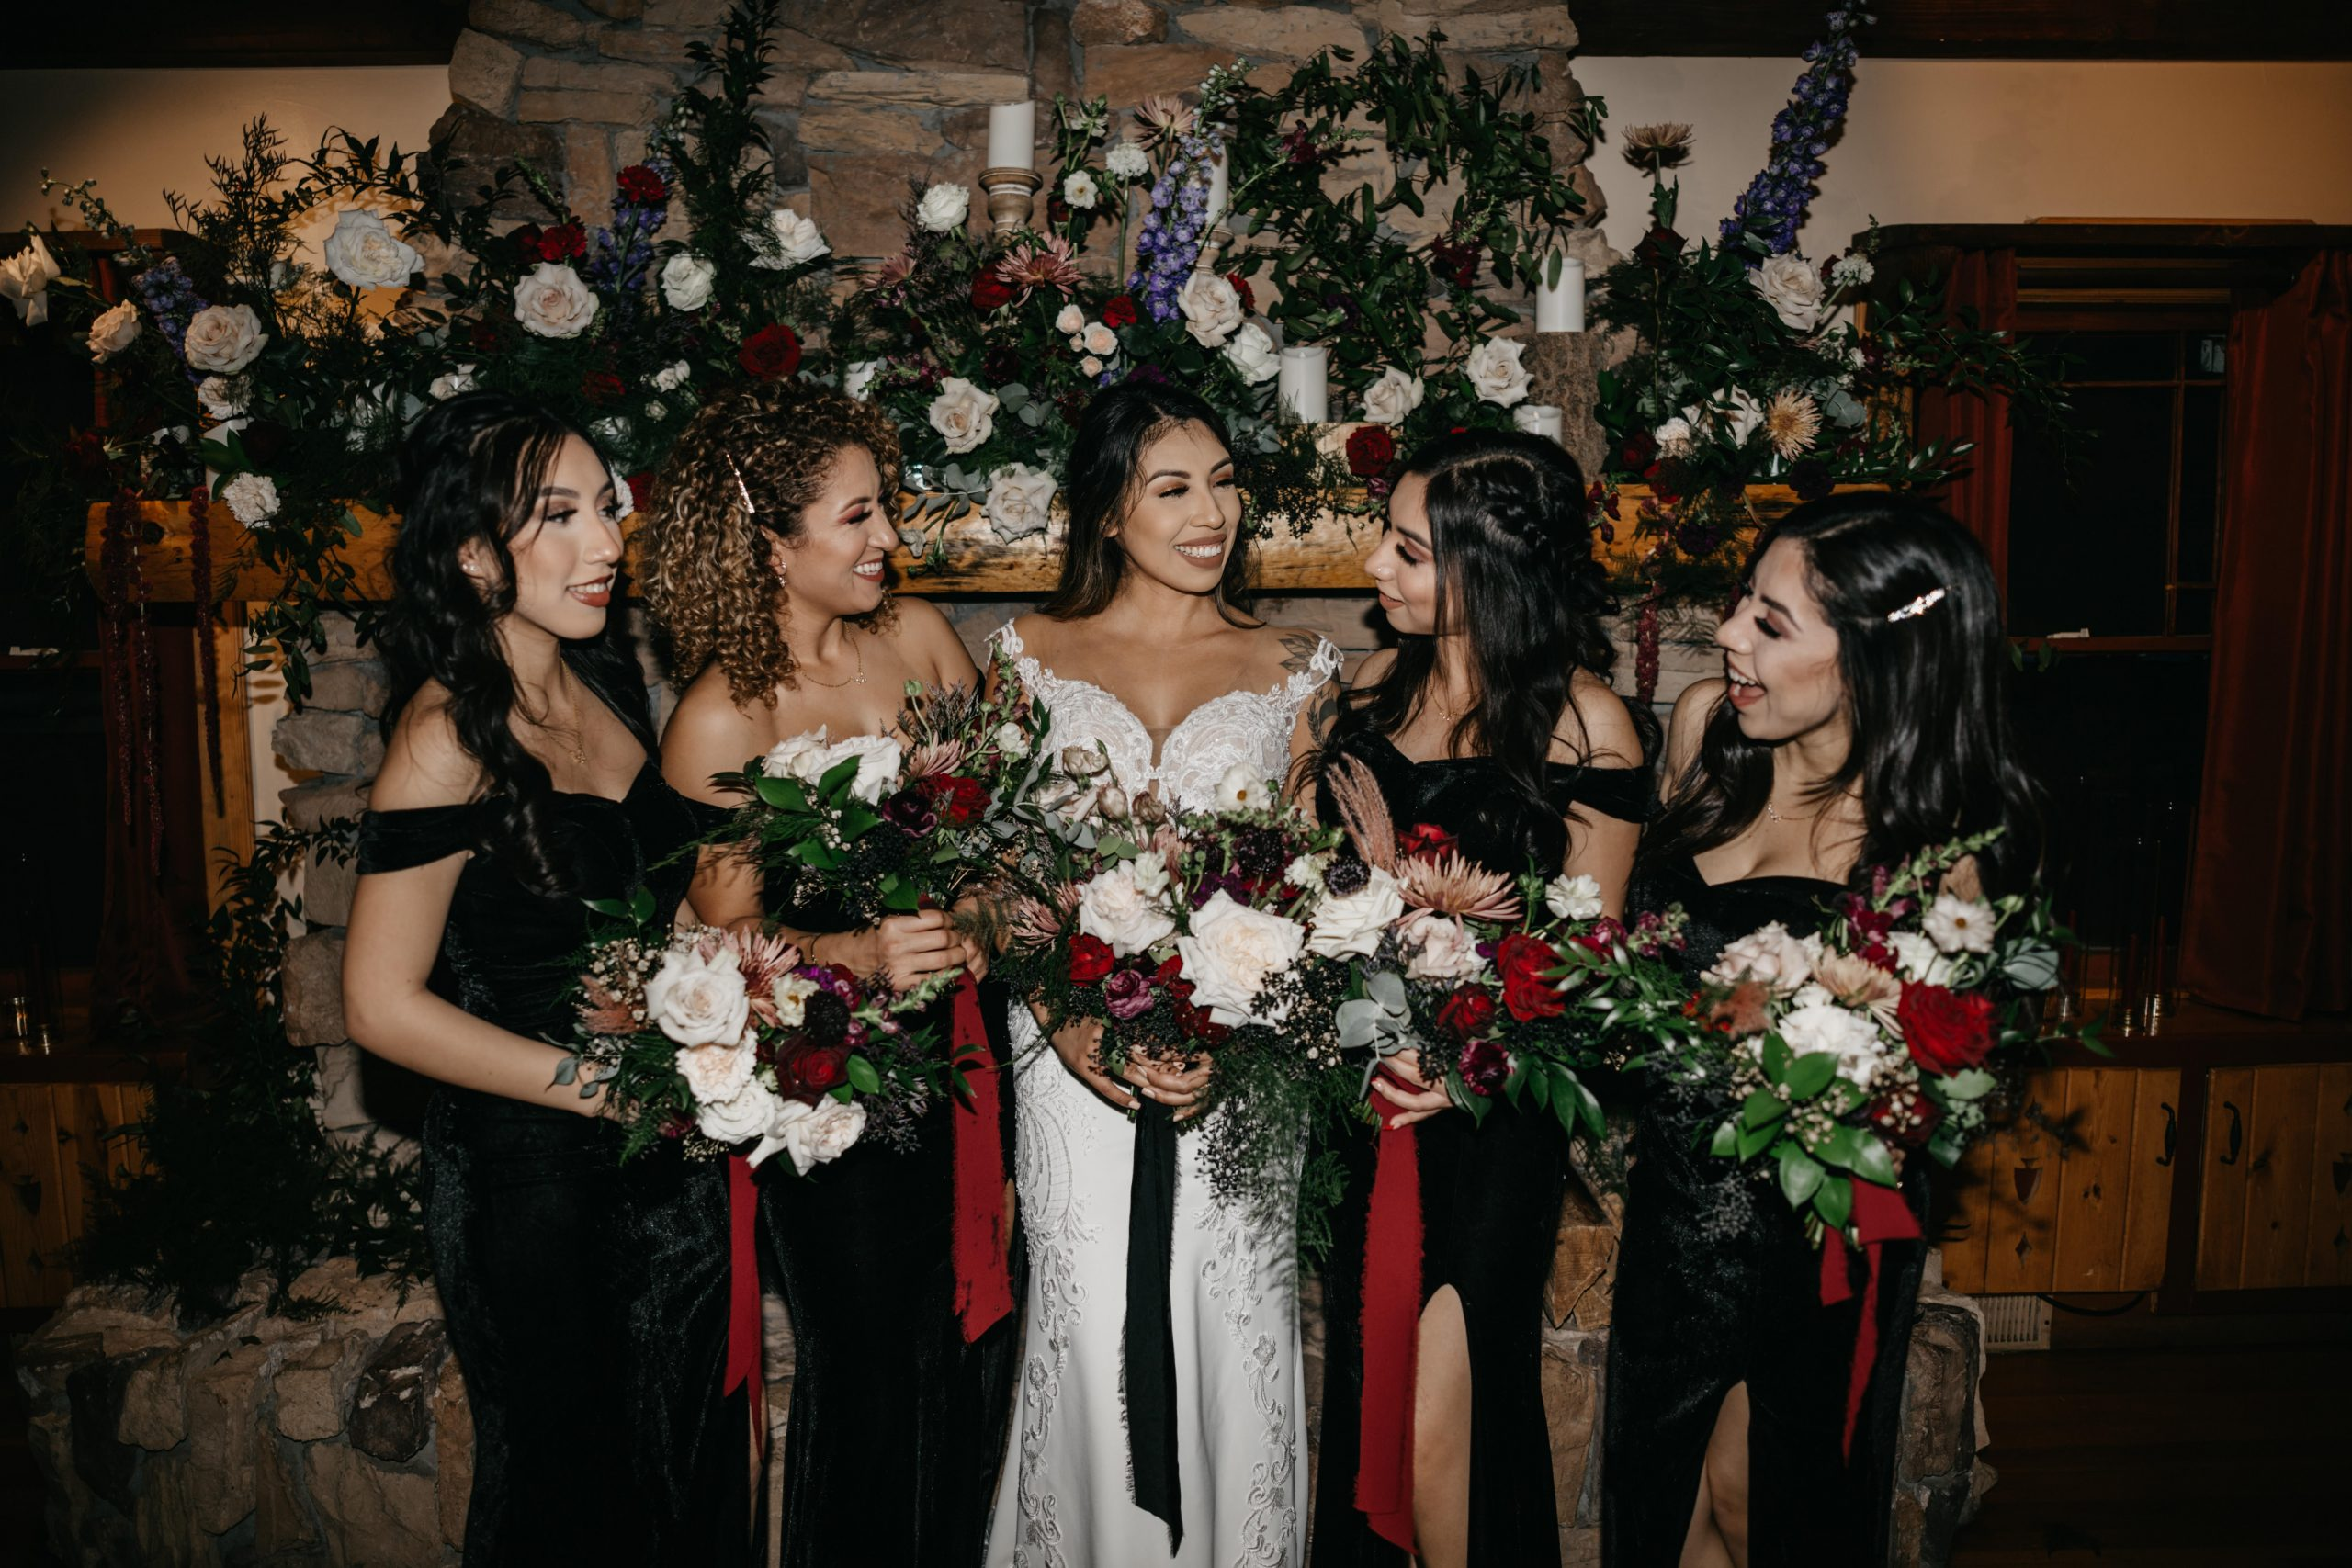 Bride and bridesmaid and their black suede dresses, Bride and groom first dance, image by Fatima Elreda Photo